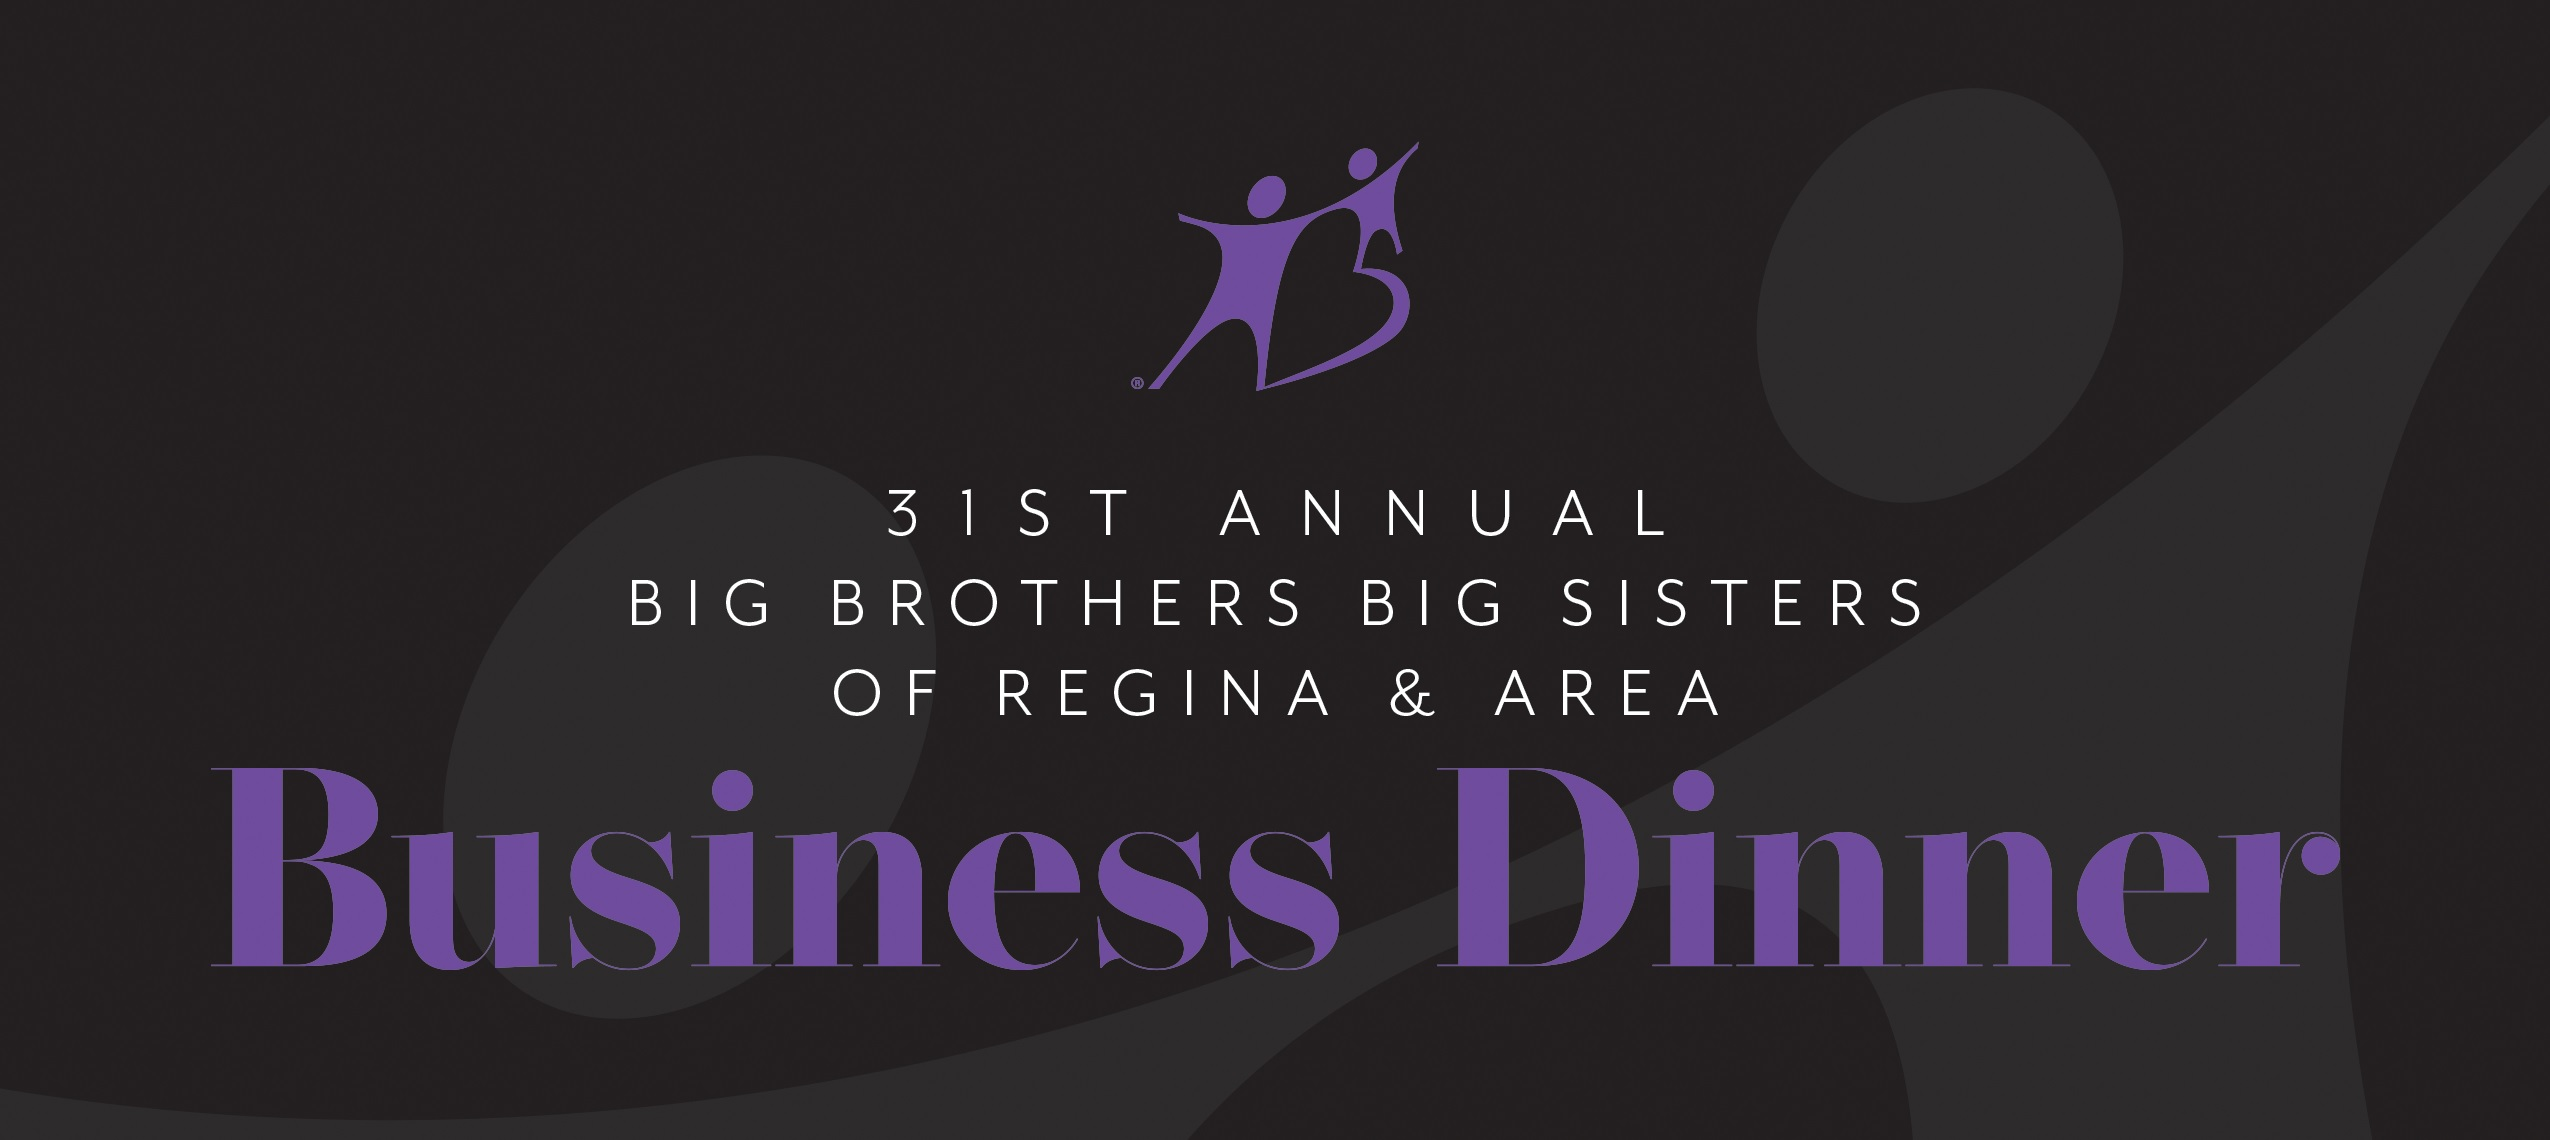 31st Annual Business Dinner – Presented by PTI Transformers Inc.